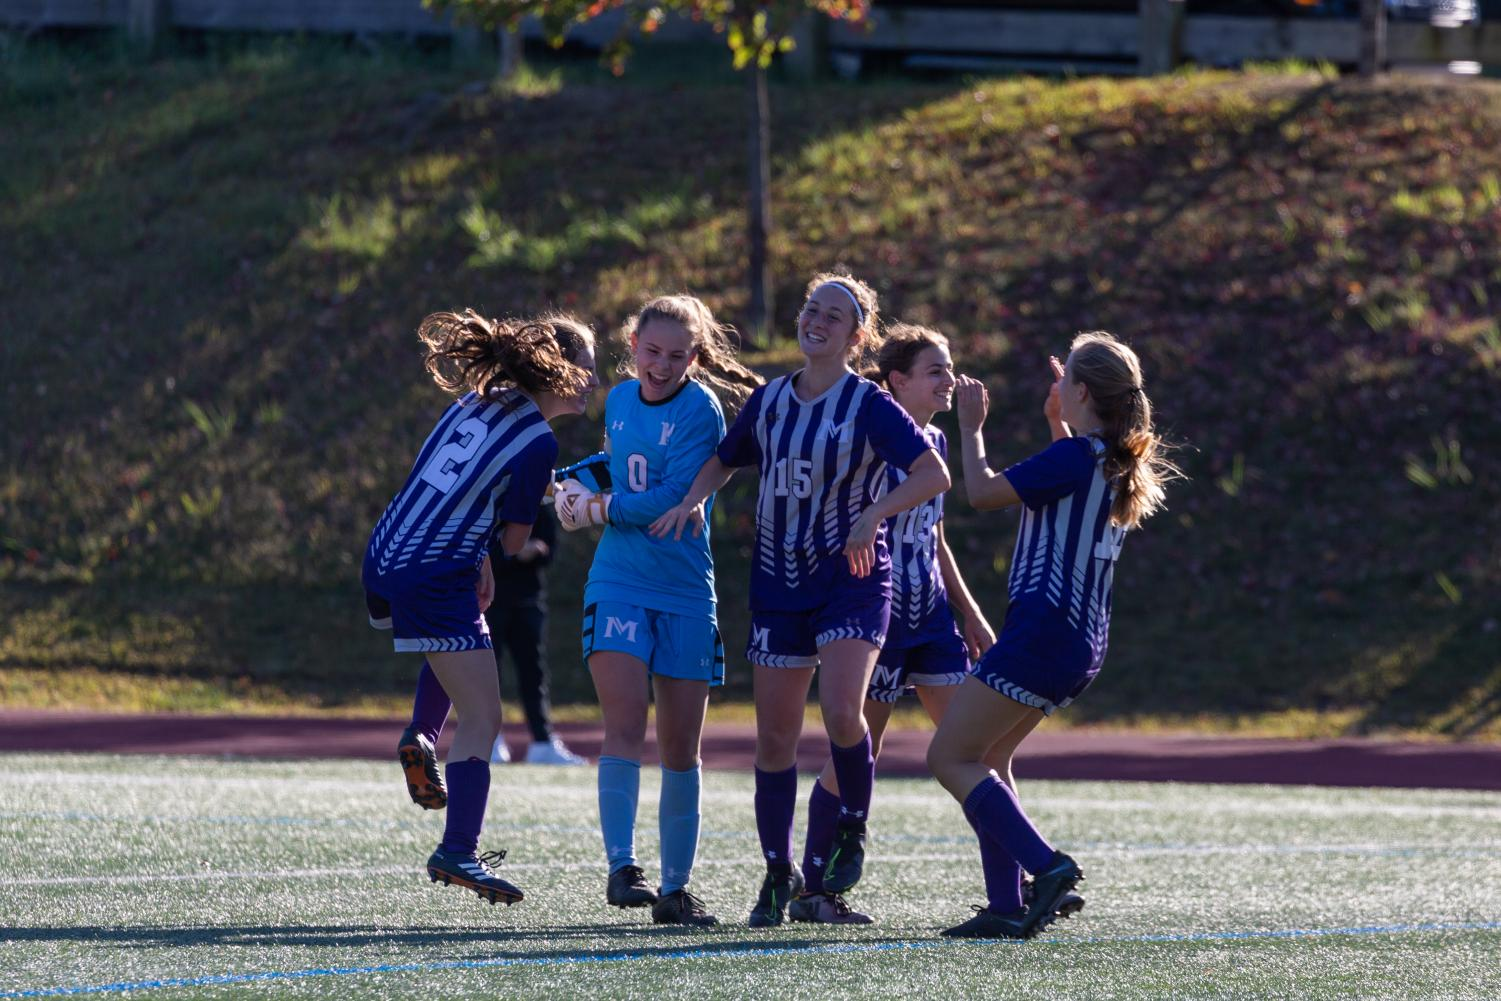 Girls' Varsity Soccer celebrates a 2-1 victory over Convent of the Sacred Heart on Oct. 5. Pictured from left to right are Lauren Marlowe ('23), Francesca Mann ('21), Kwynne Schlossman ('22),  Rachel Schwartz ('21) and Tara Phillips ('23). The team has more wins this year than they've had in any season since 2009.